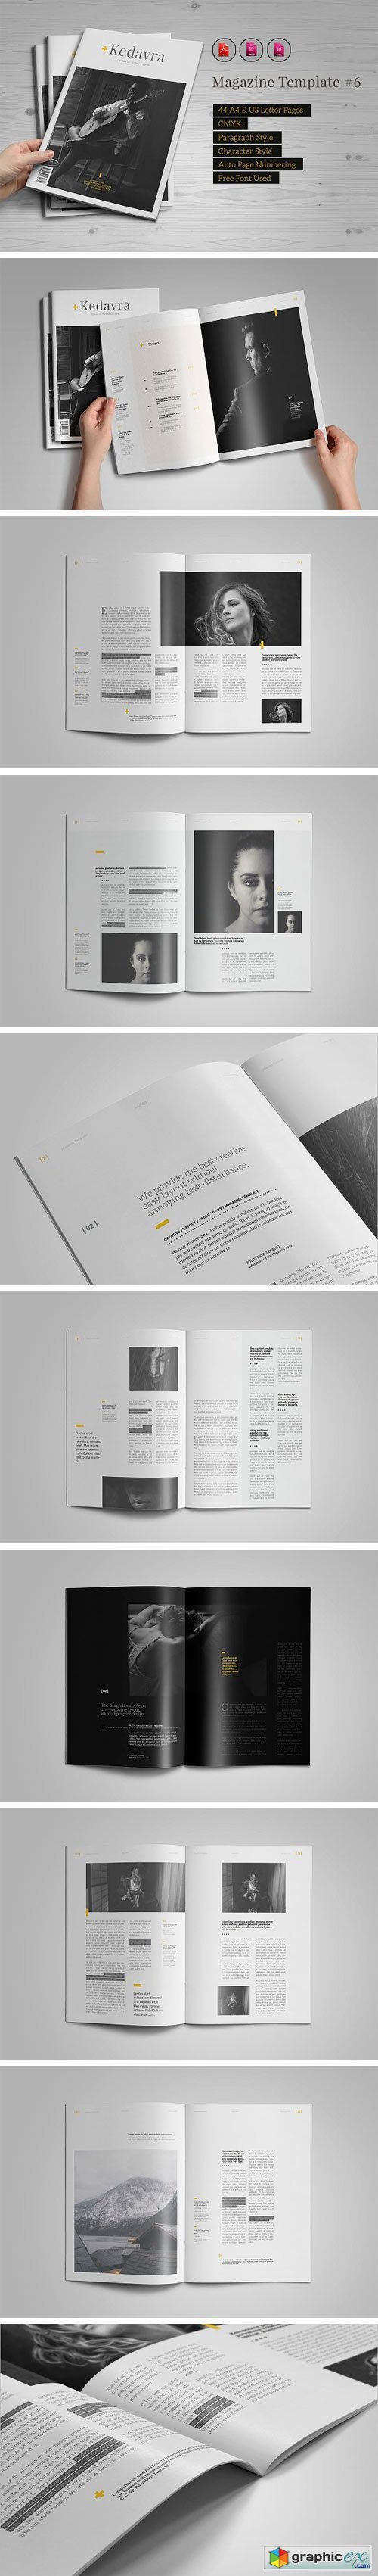 Indesign Magazine Template #6